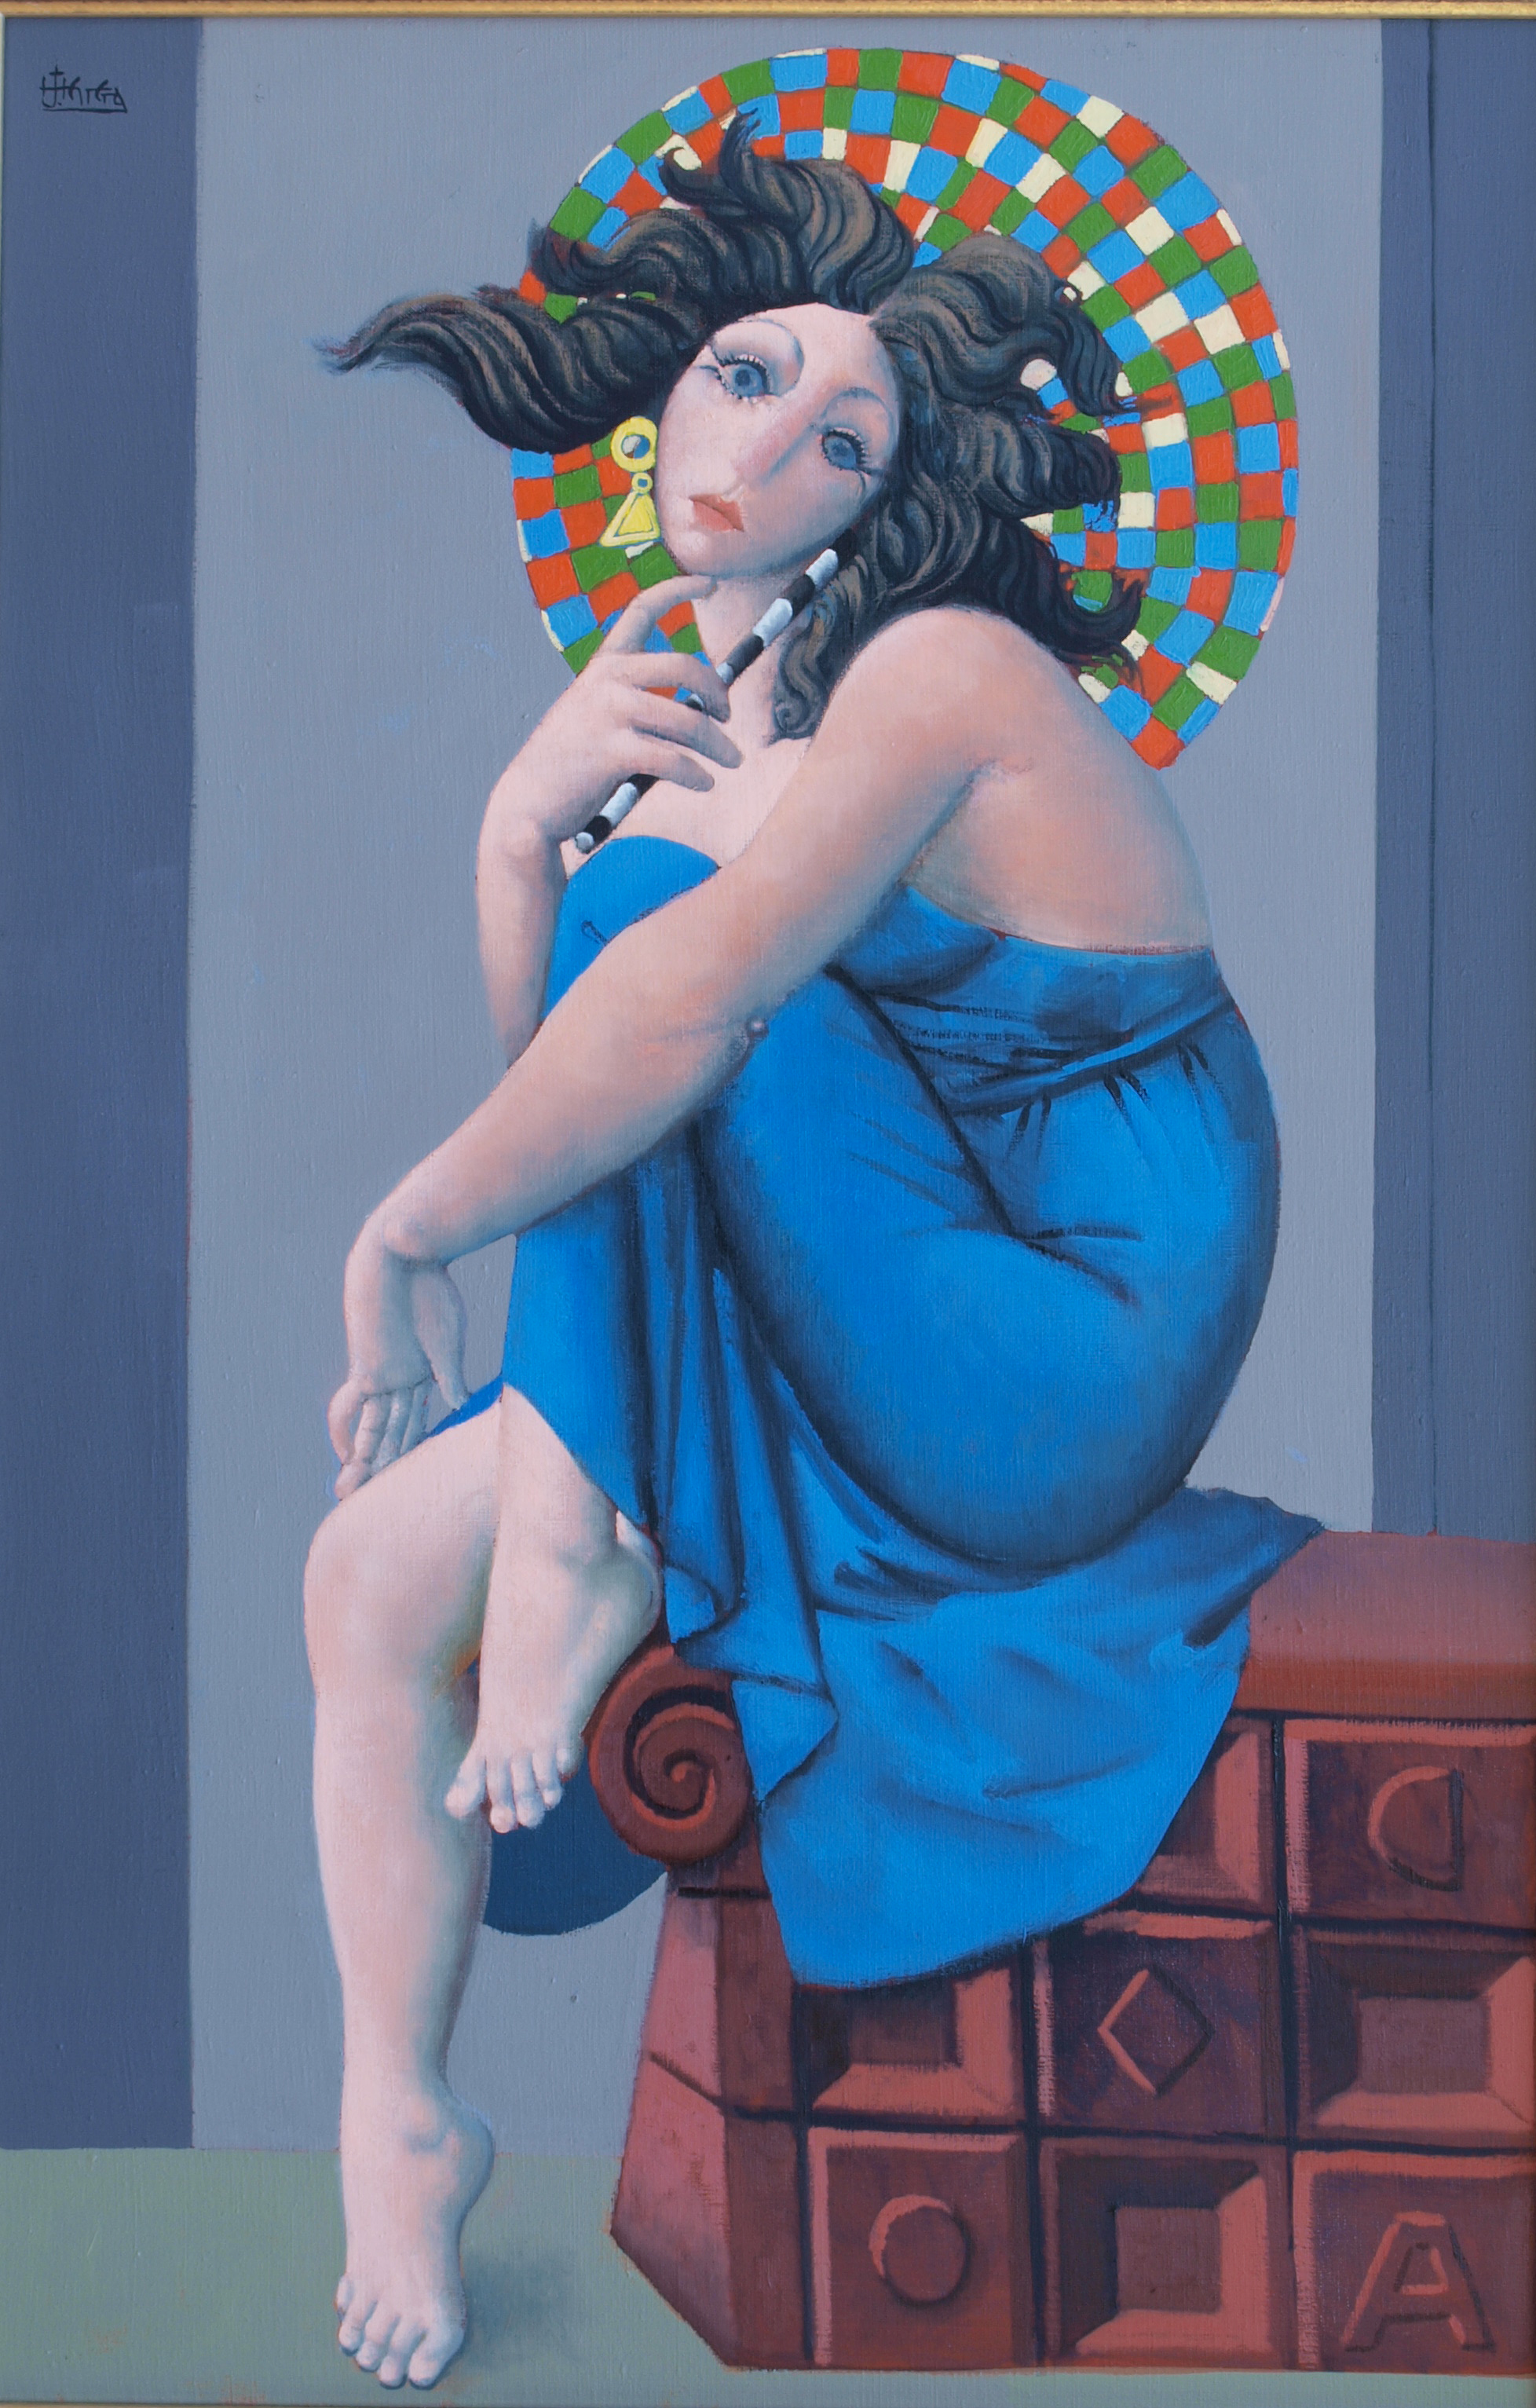 Retour aux Sources artwork by Jose Herrera - art listed for sale on Artplode